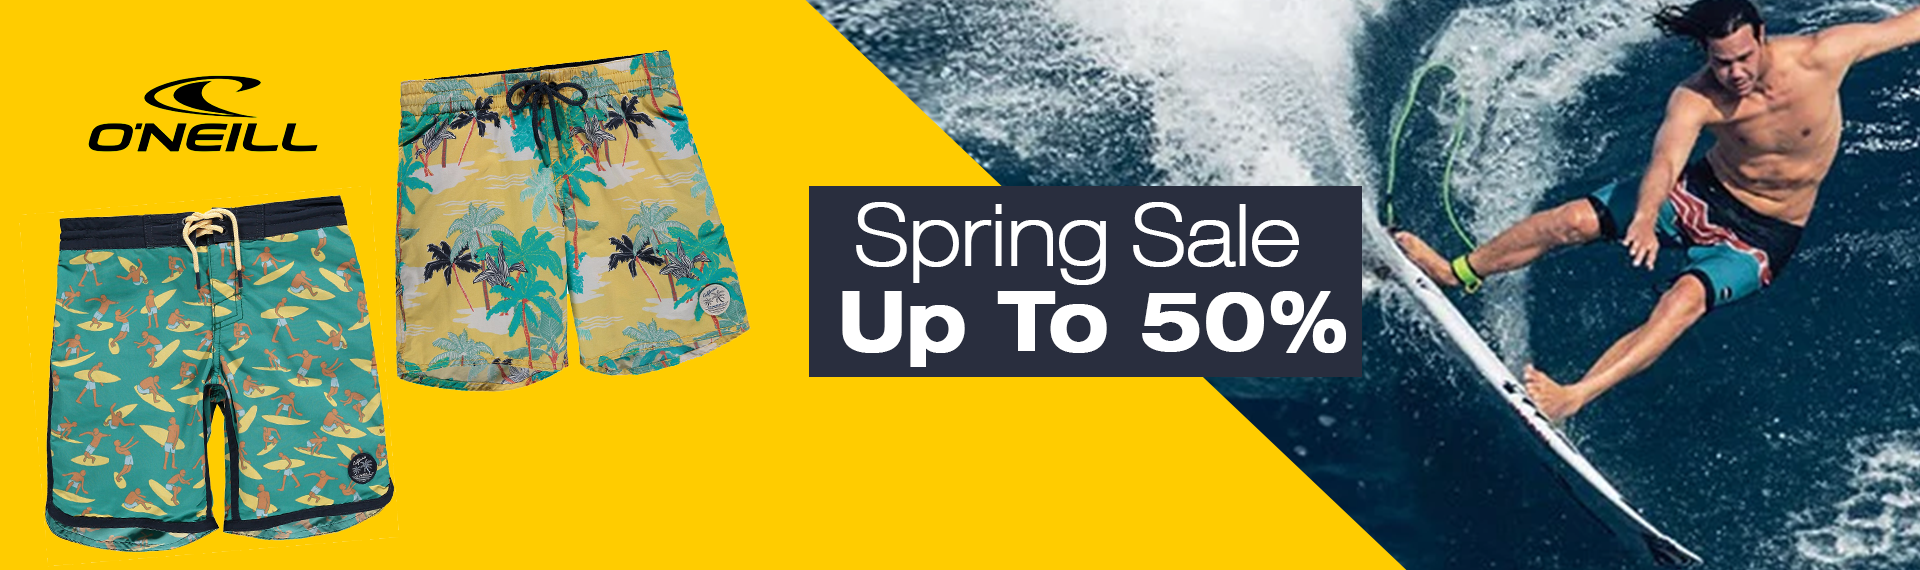 o'neill spring sales up to 50%